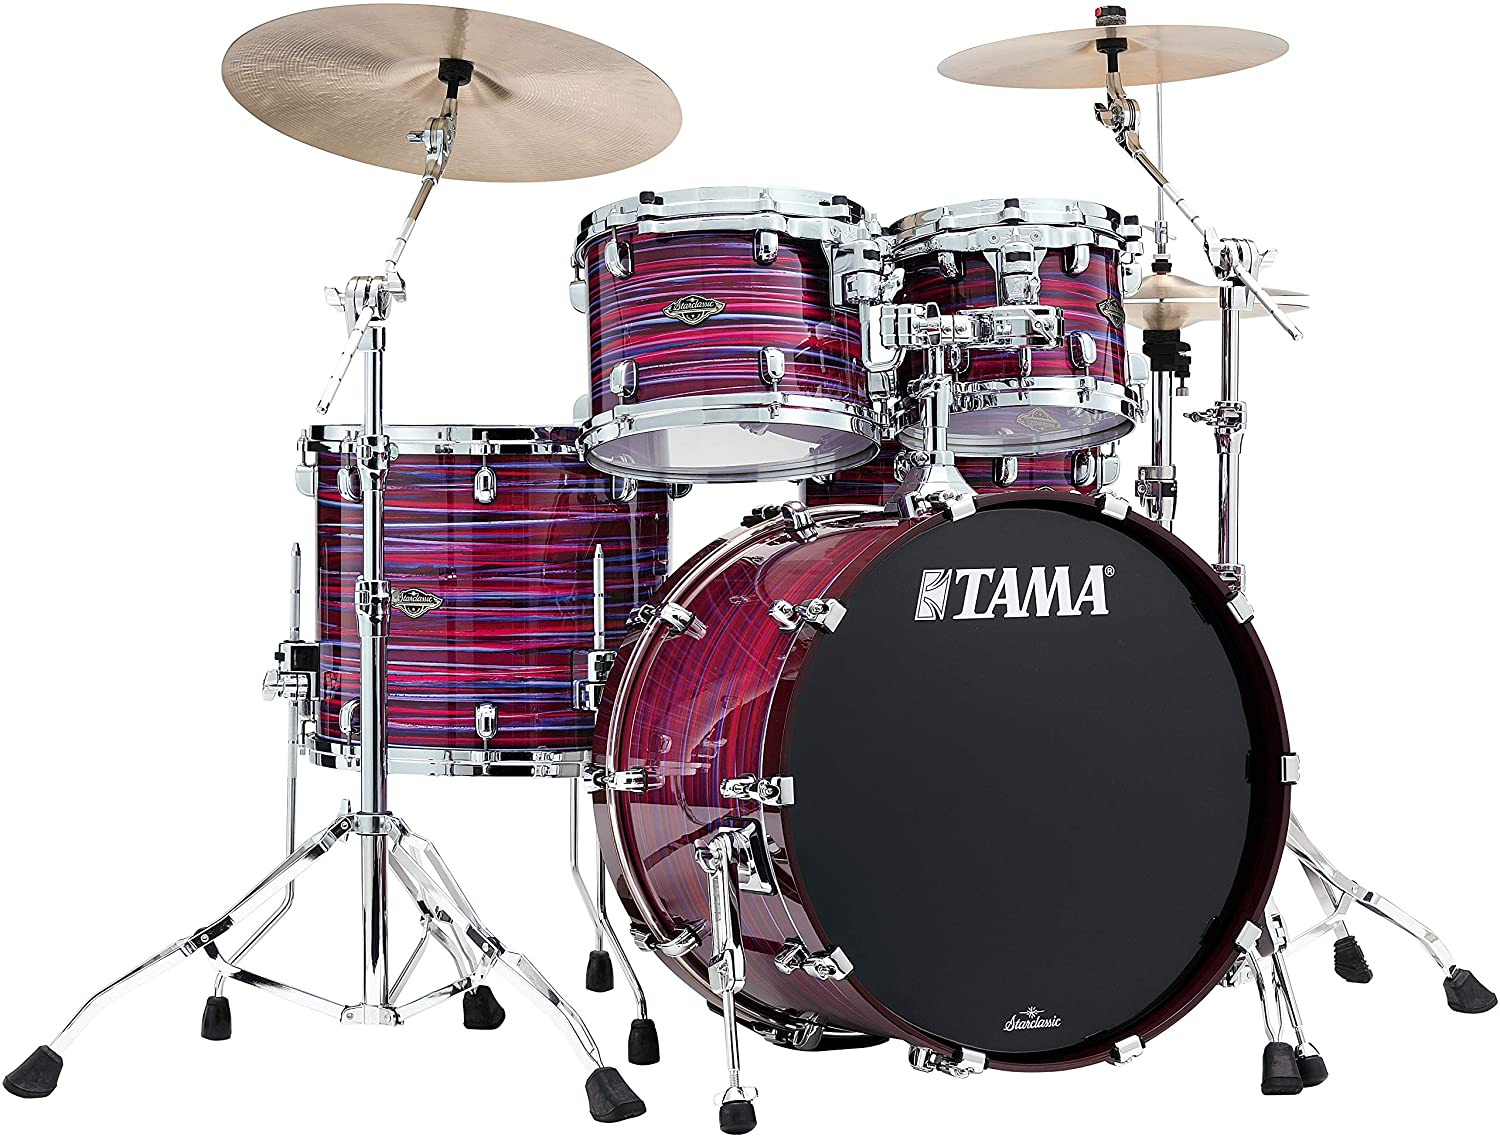 Tama Starclassic Walnut Birch Lacquer 4-Piece Shell Pack - Phantasm Oyster